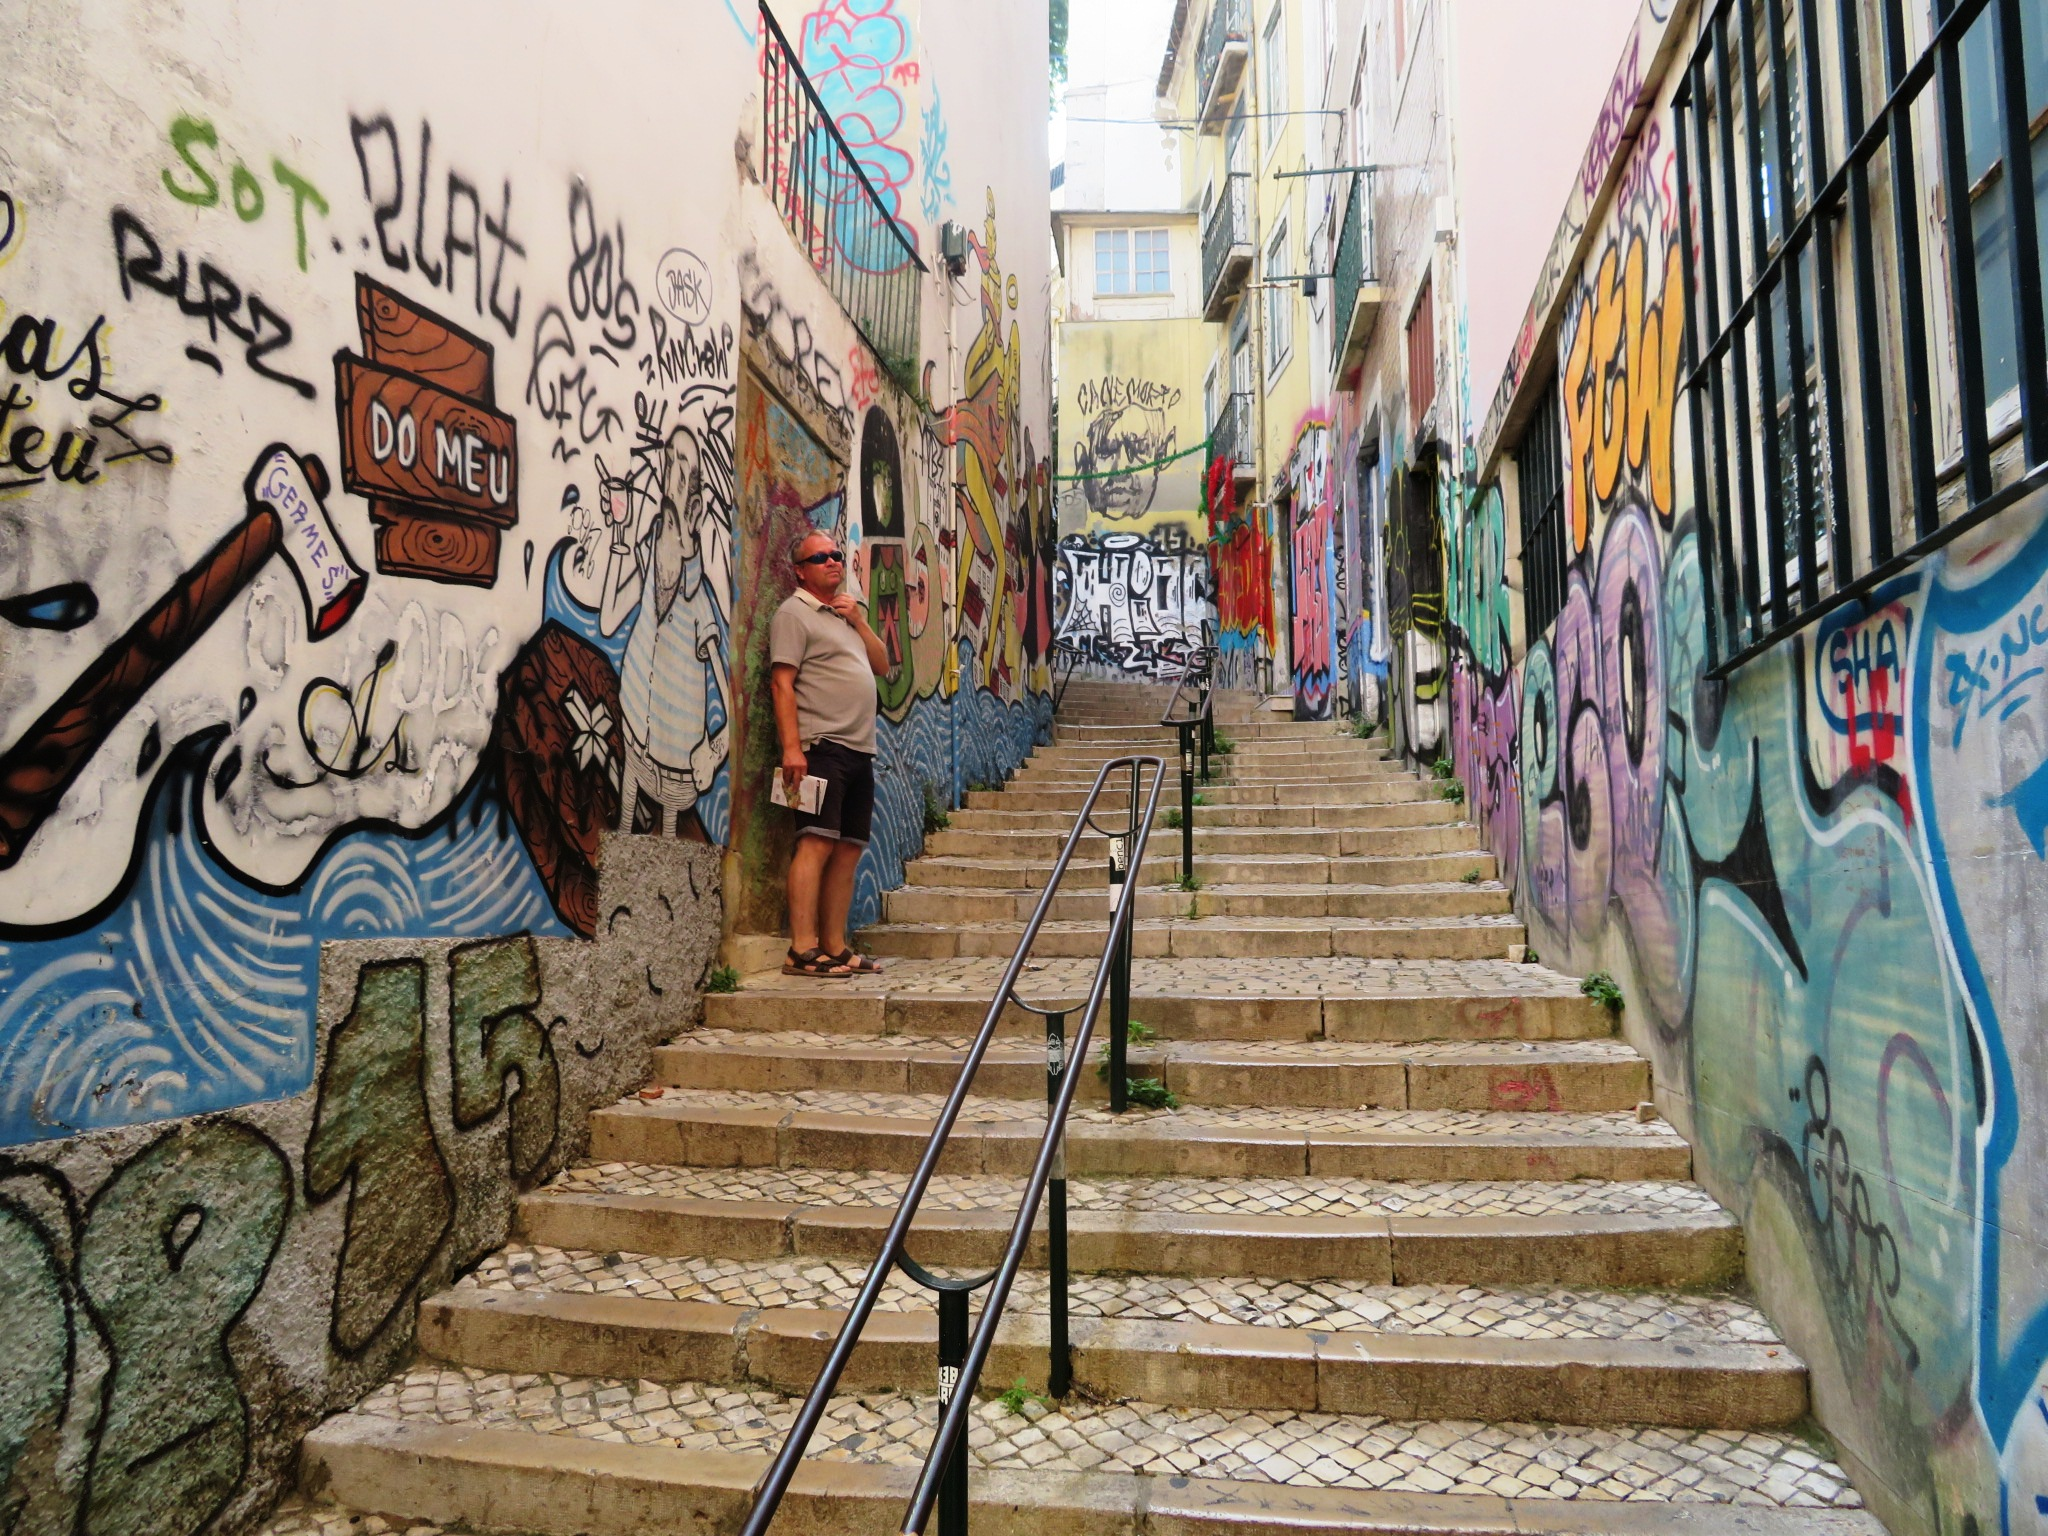 Where do you stand on the issue of urban art or criminal graffiti